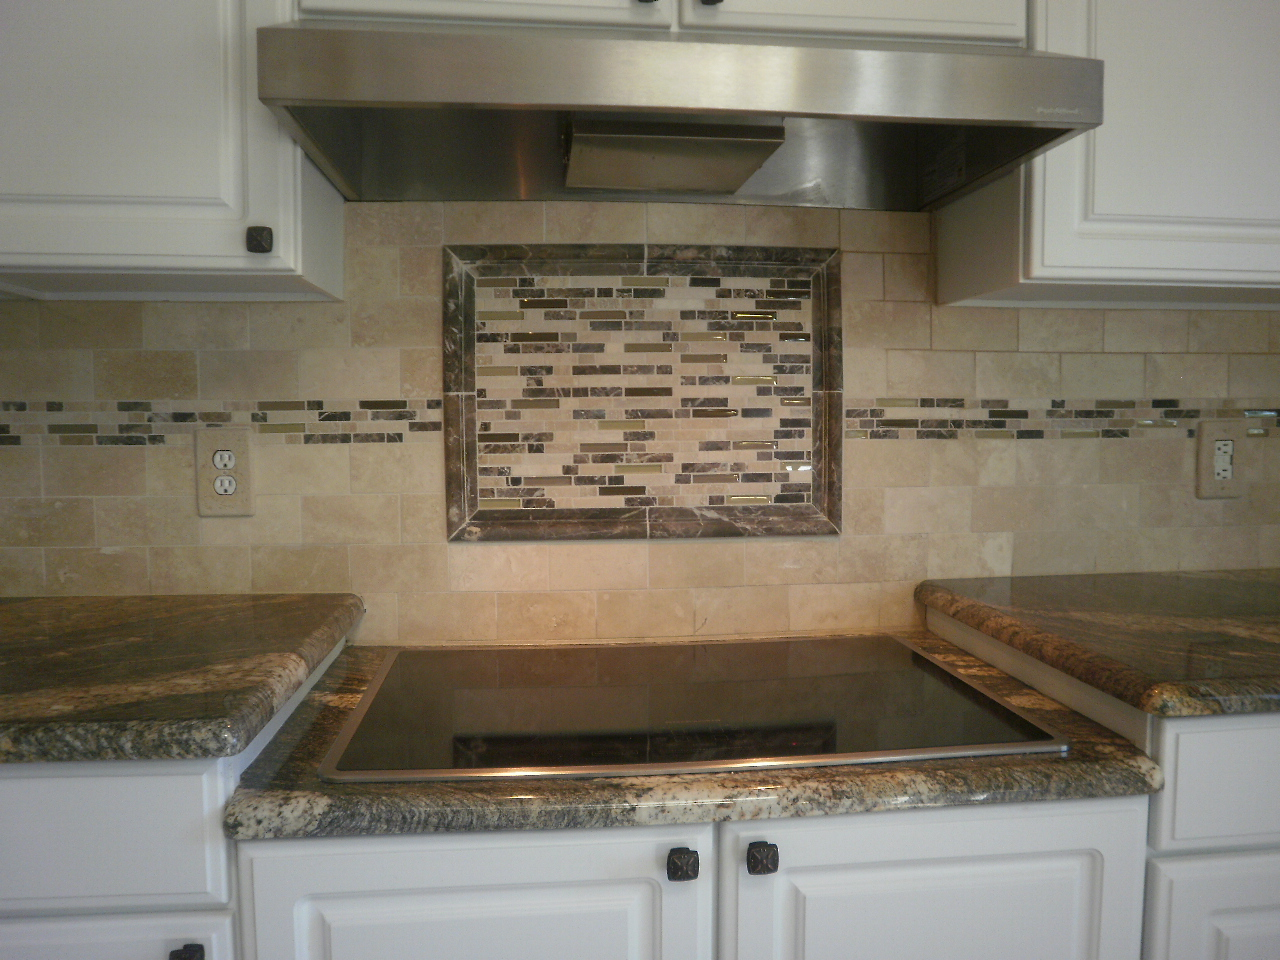 Kitchen backsplash ideas glass tile afreakatheart Kitchen backsplash ideas